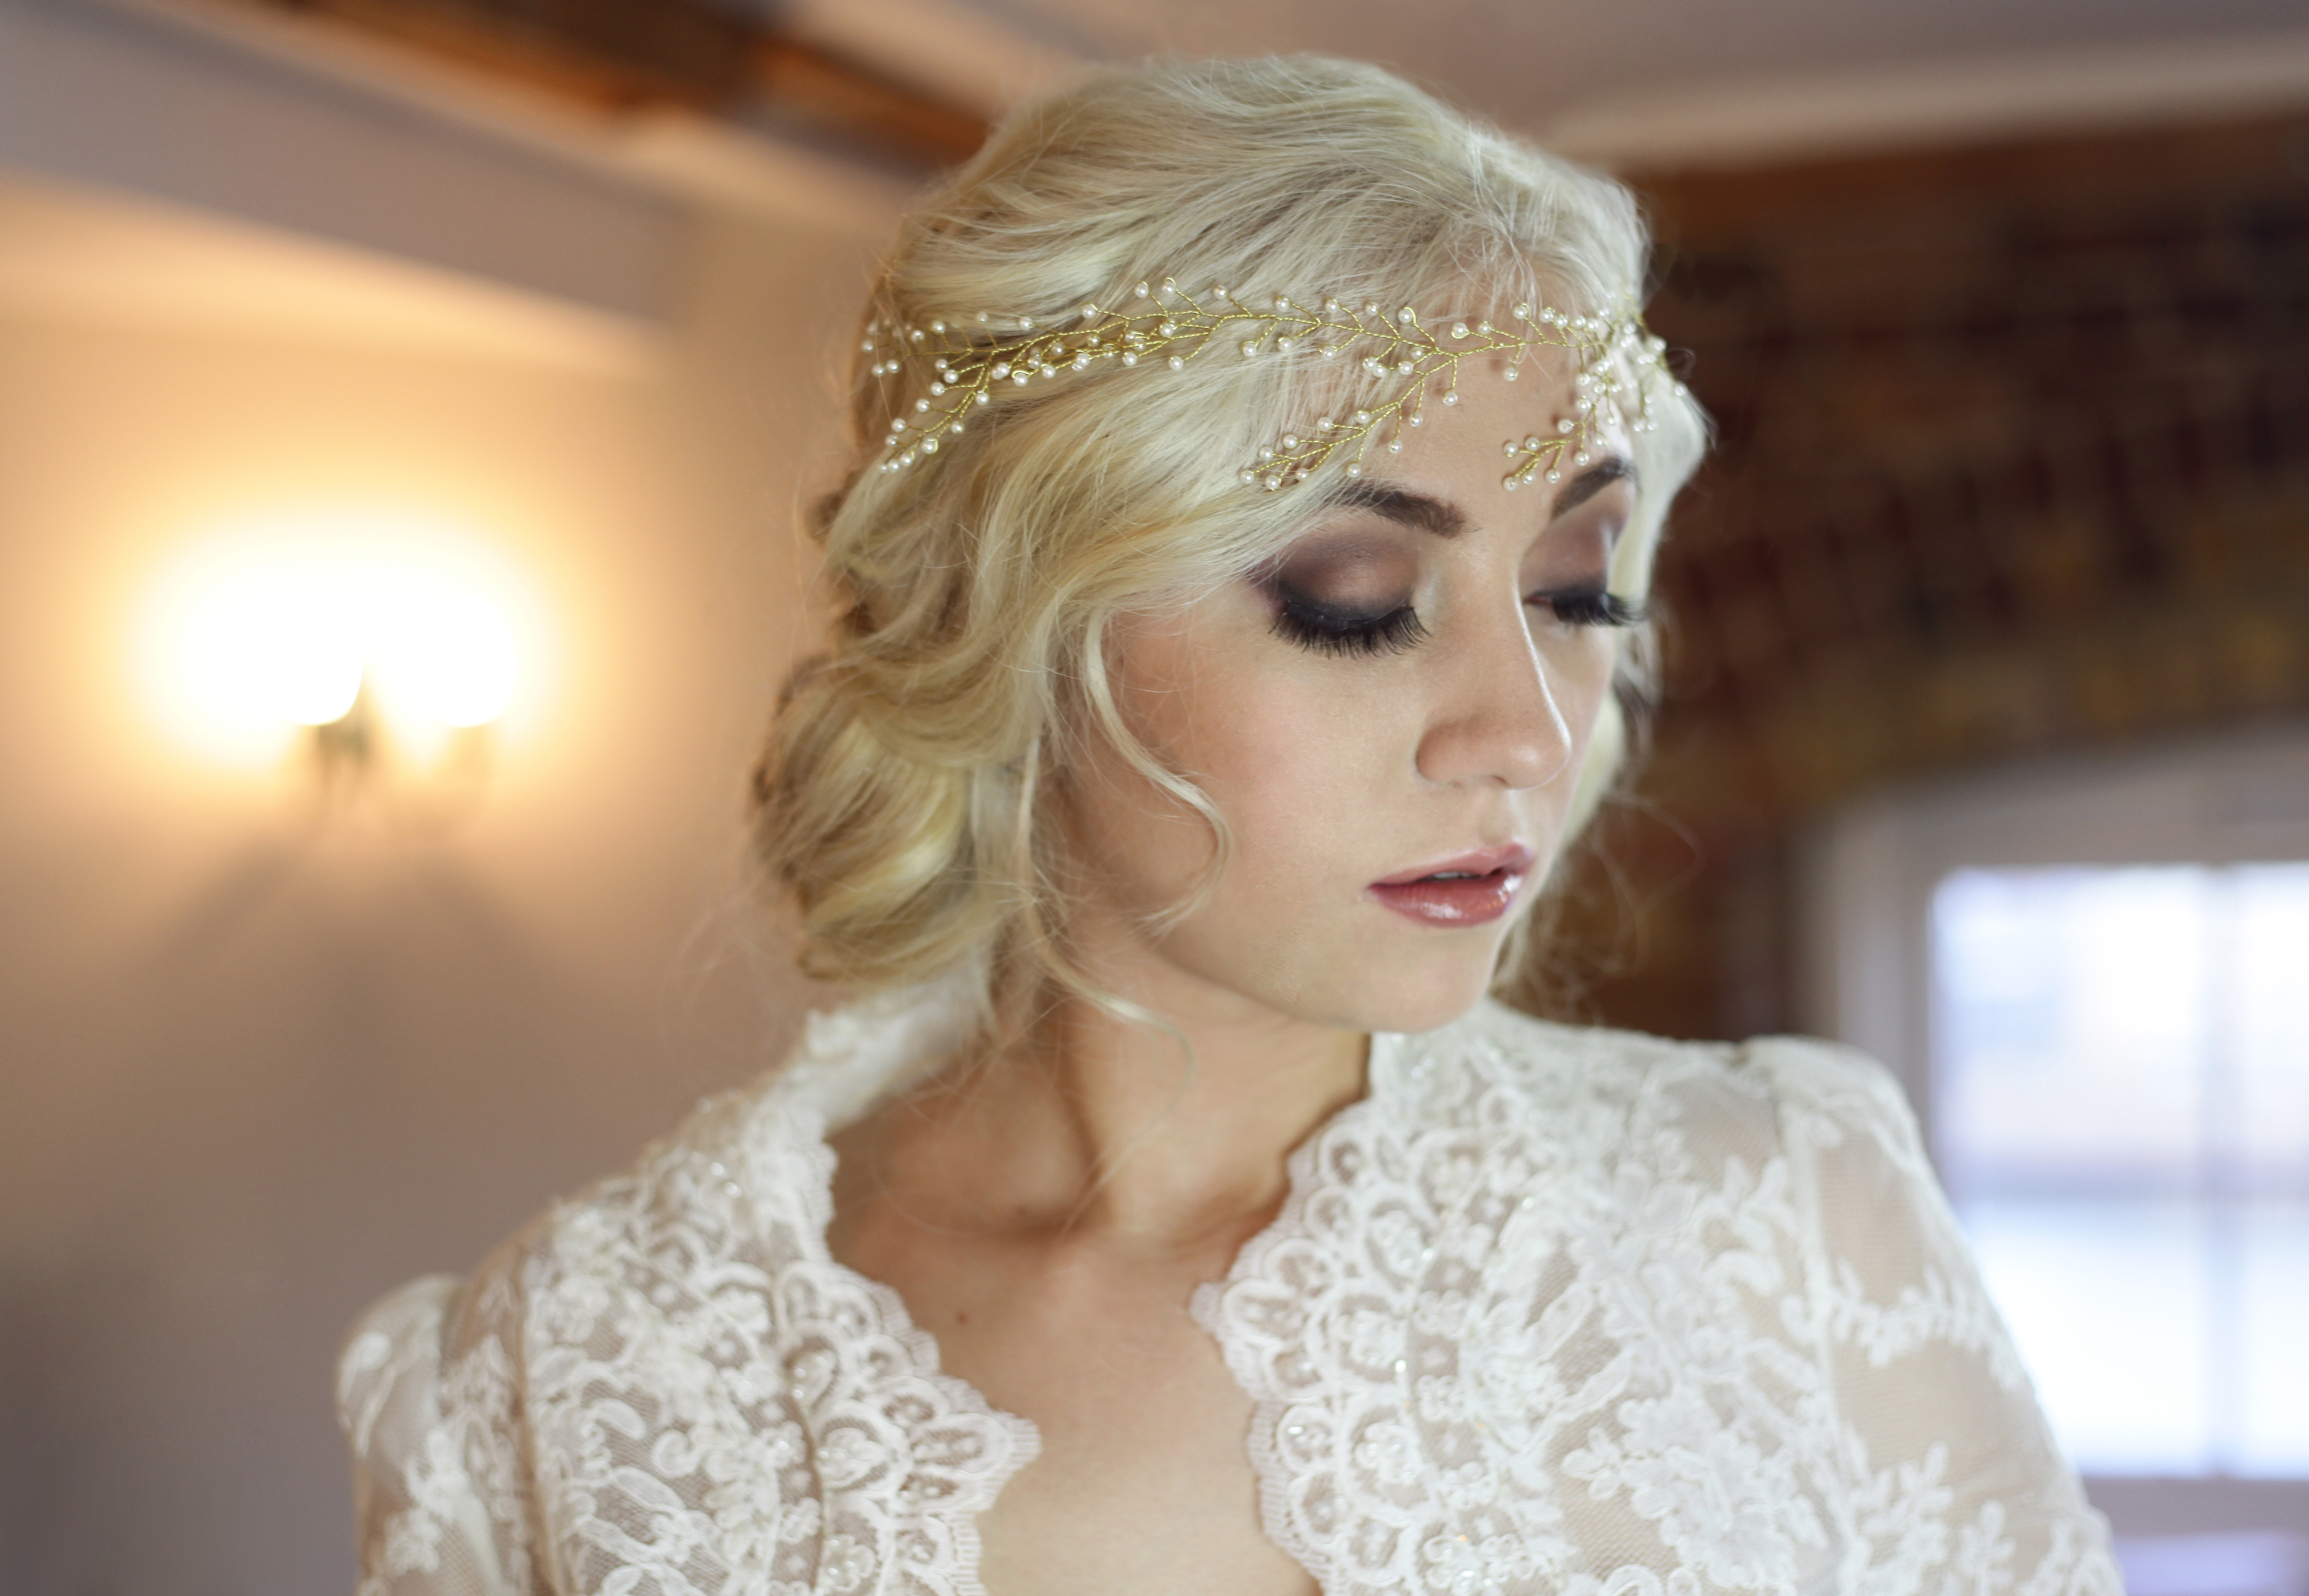 Wedding Make Up And Hair Stylist